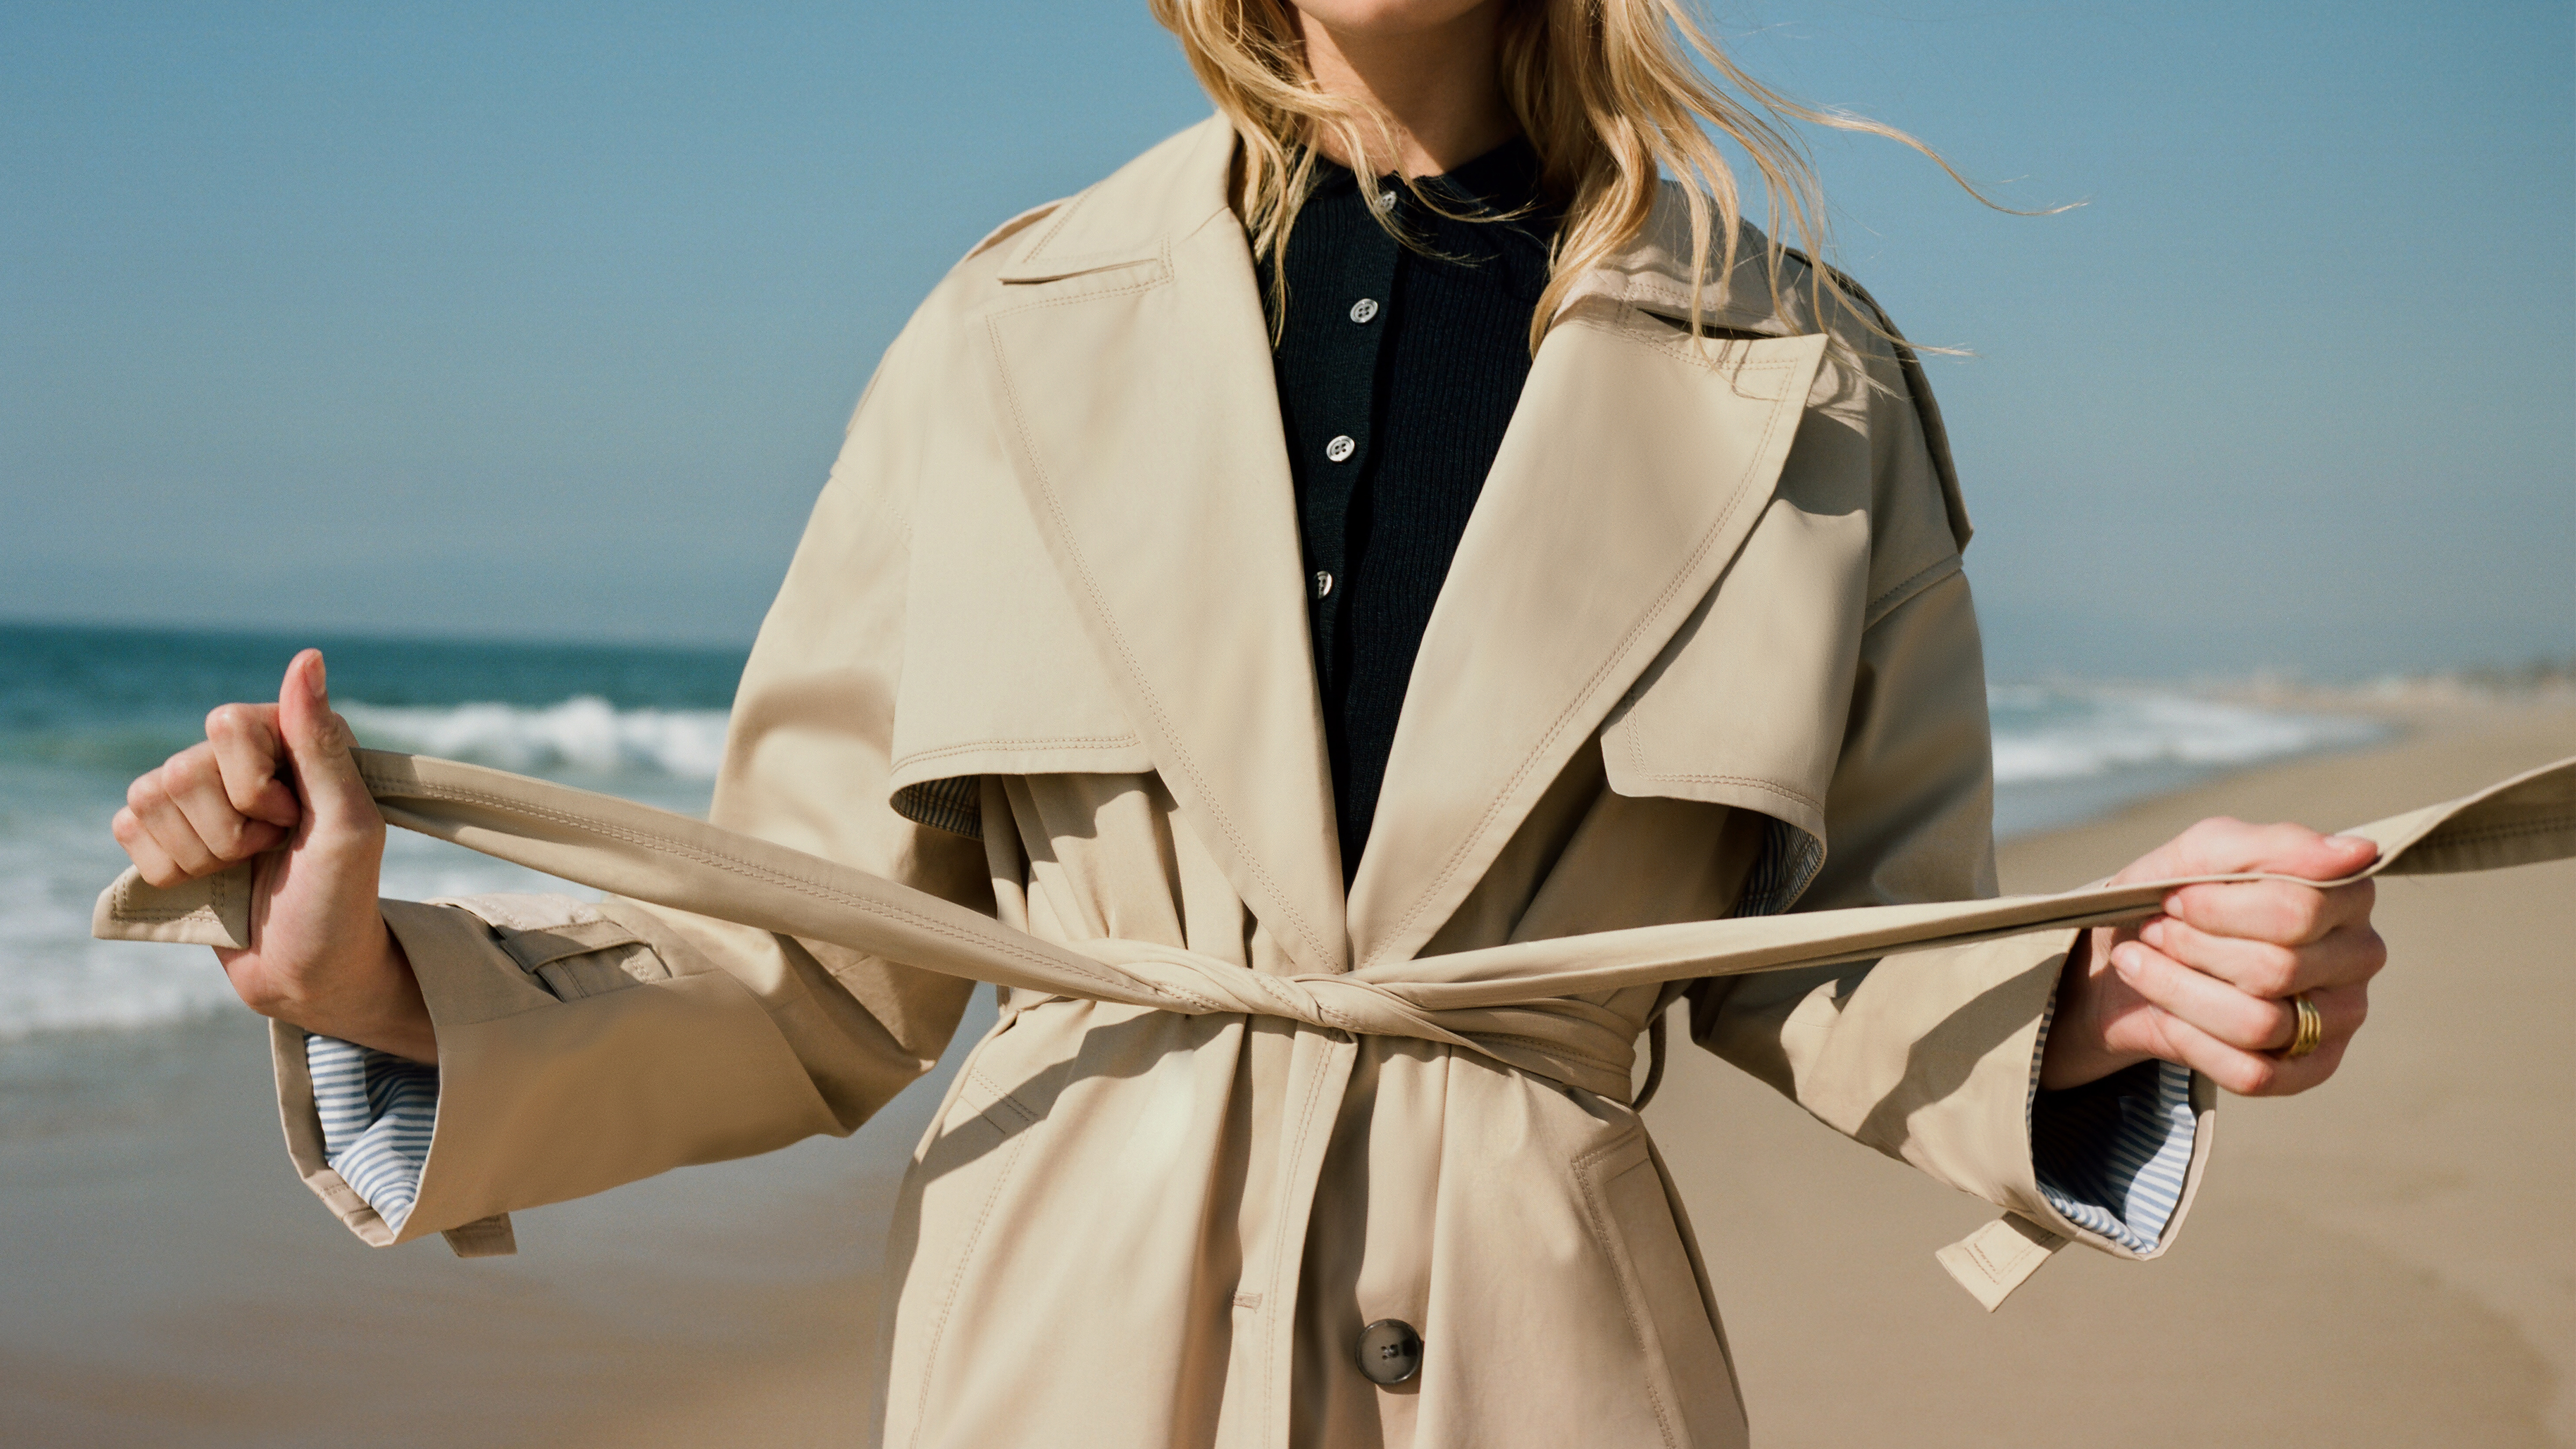 goop's Banana Republic Edit Is Designed With Powerful Women In Mind